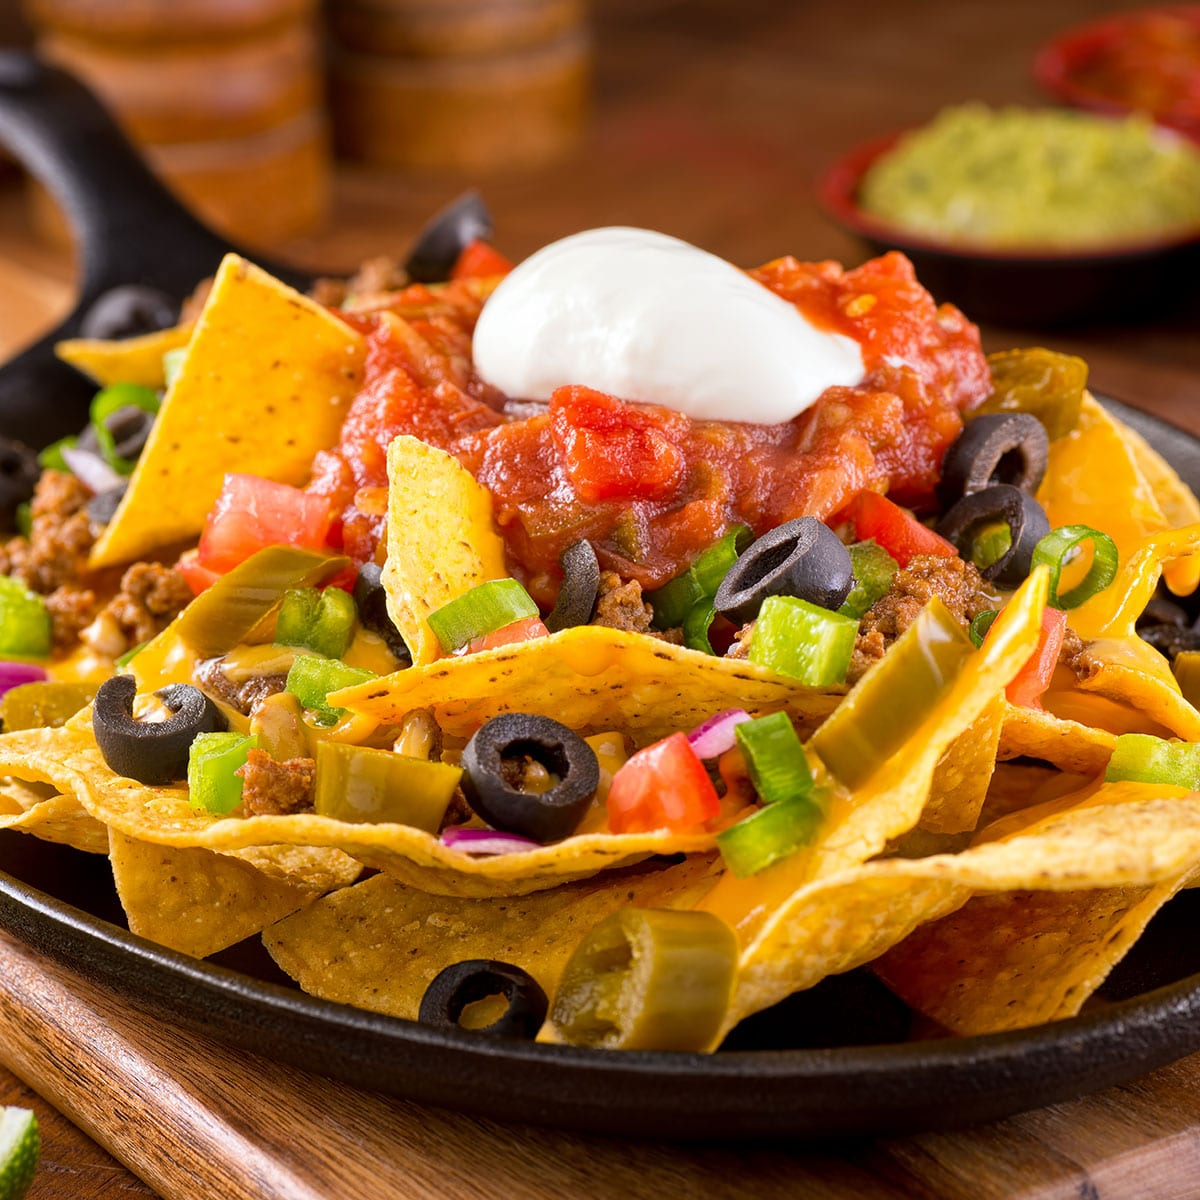 NATIONAL TORTILLA CHIP DAY - February 24, 2019